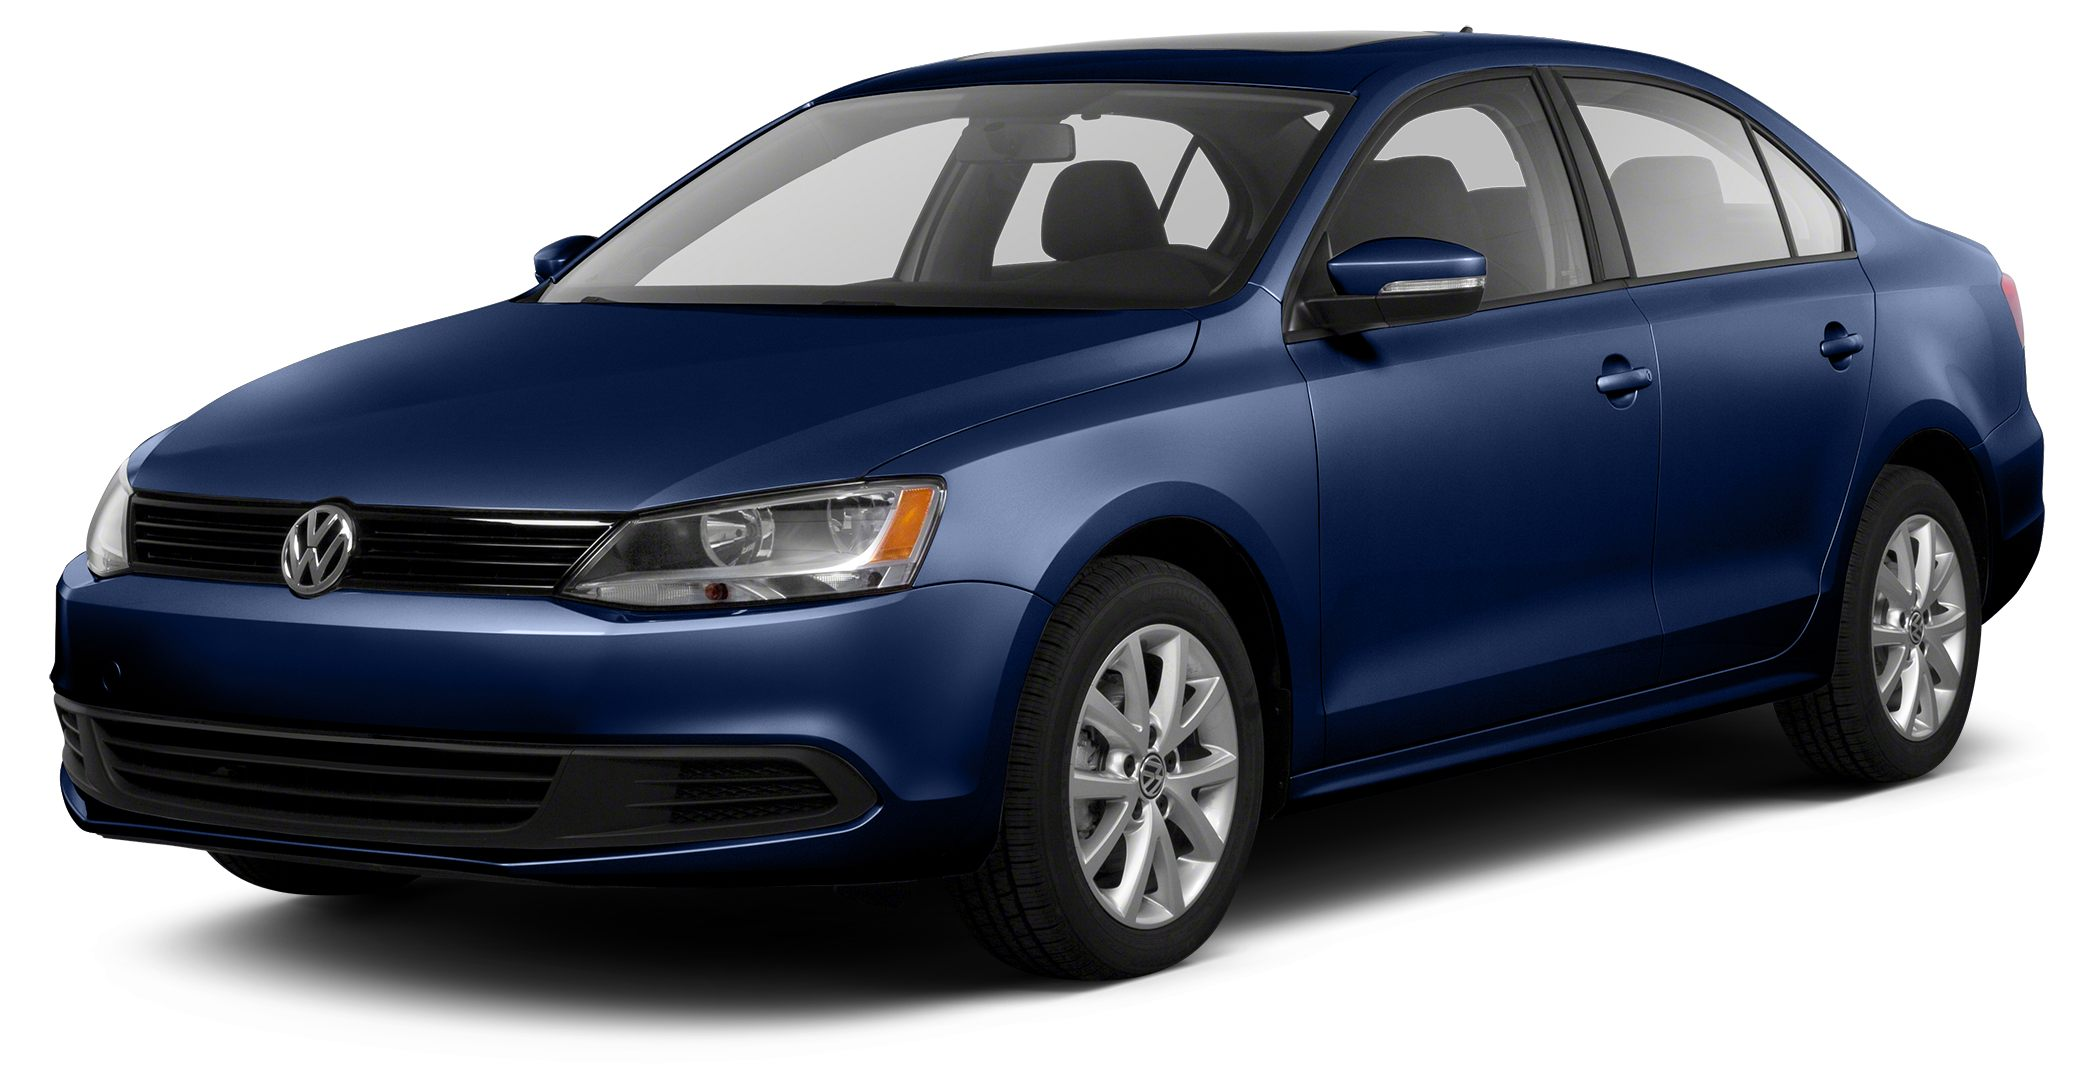 2013 Volkswagen Jetta 20 Miles 48169Color Tempest Blue Metallic Stock R7170417A VIN 3VW2K7A